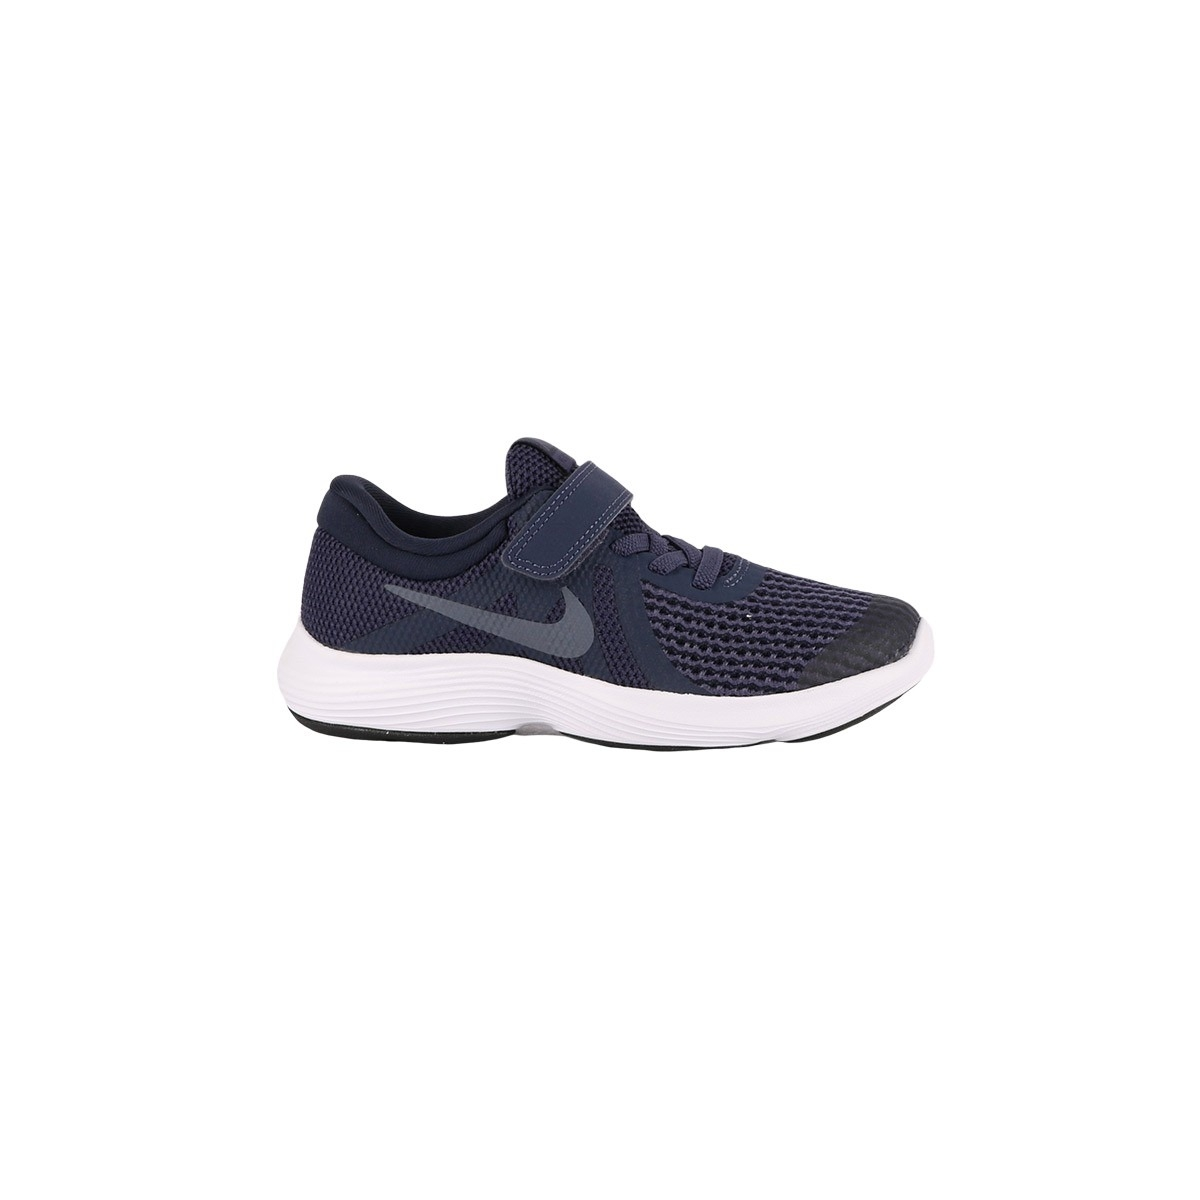 Nike Revolution 4 PSV Neutral Indigo Light Carbon Azul Marino Niño